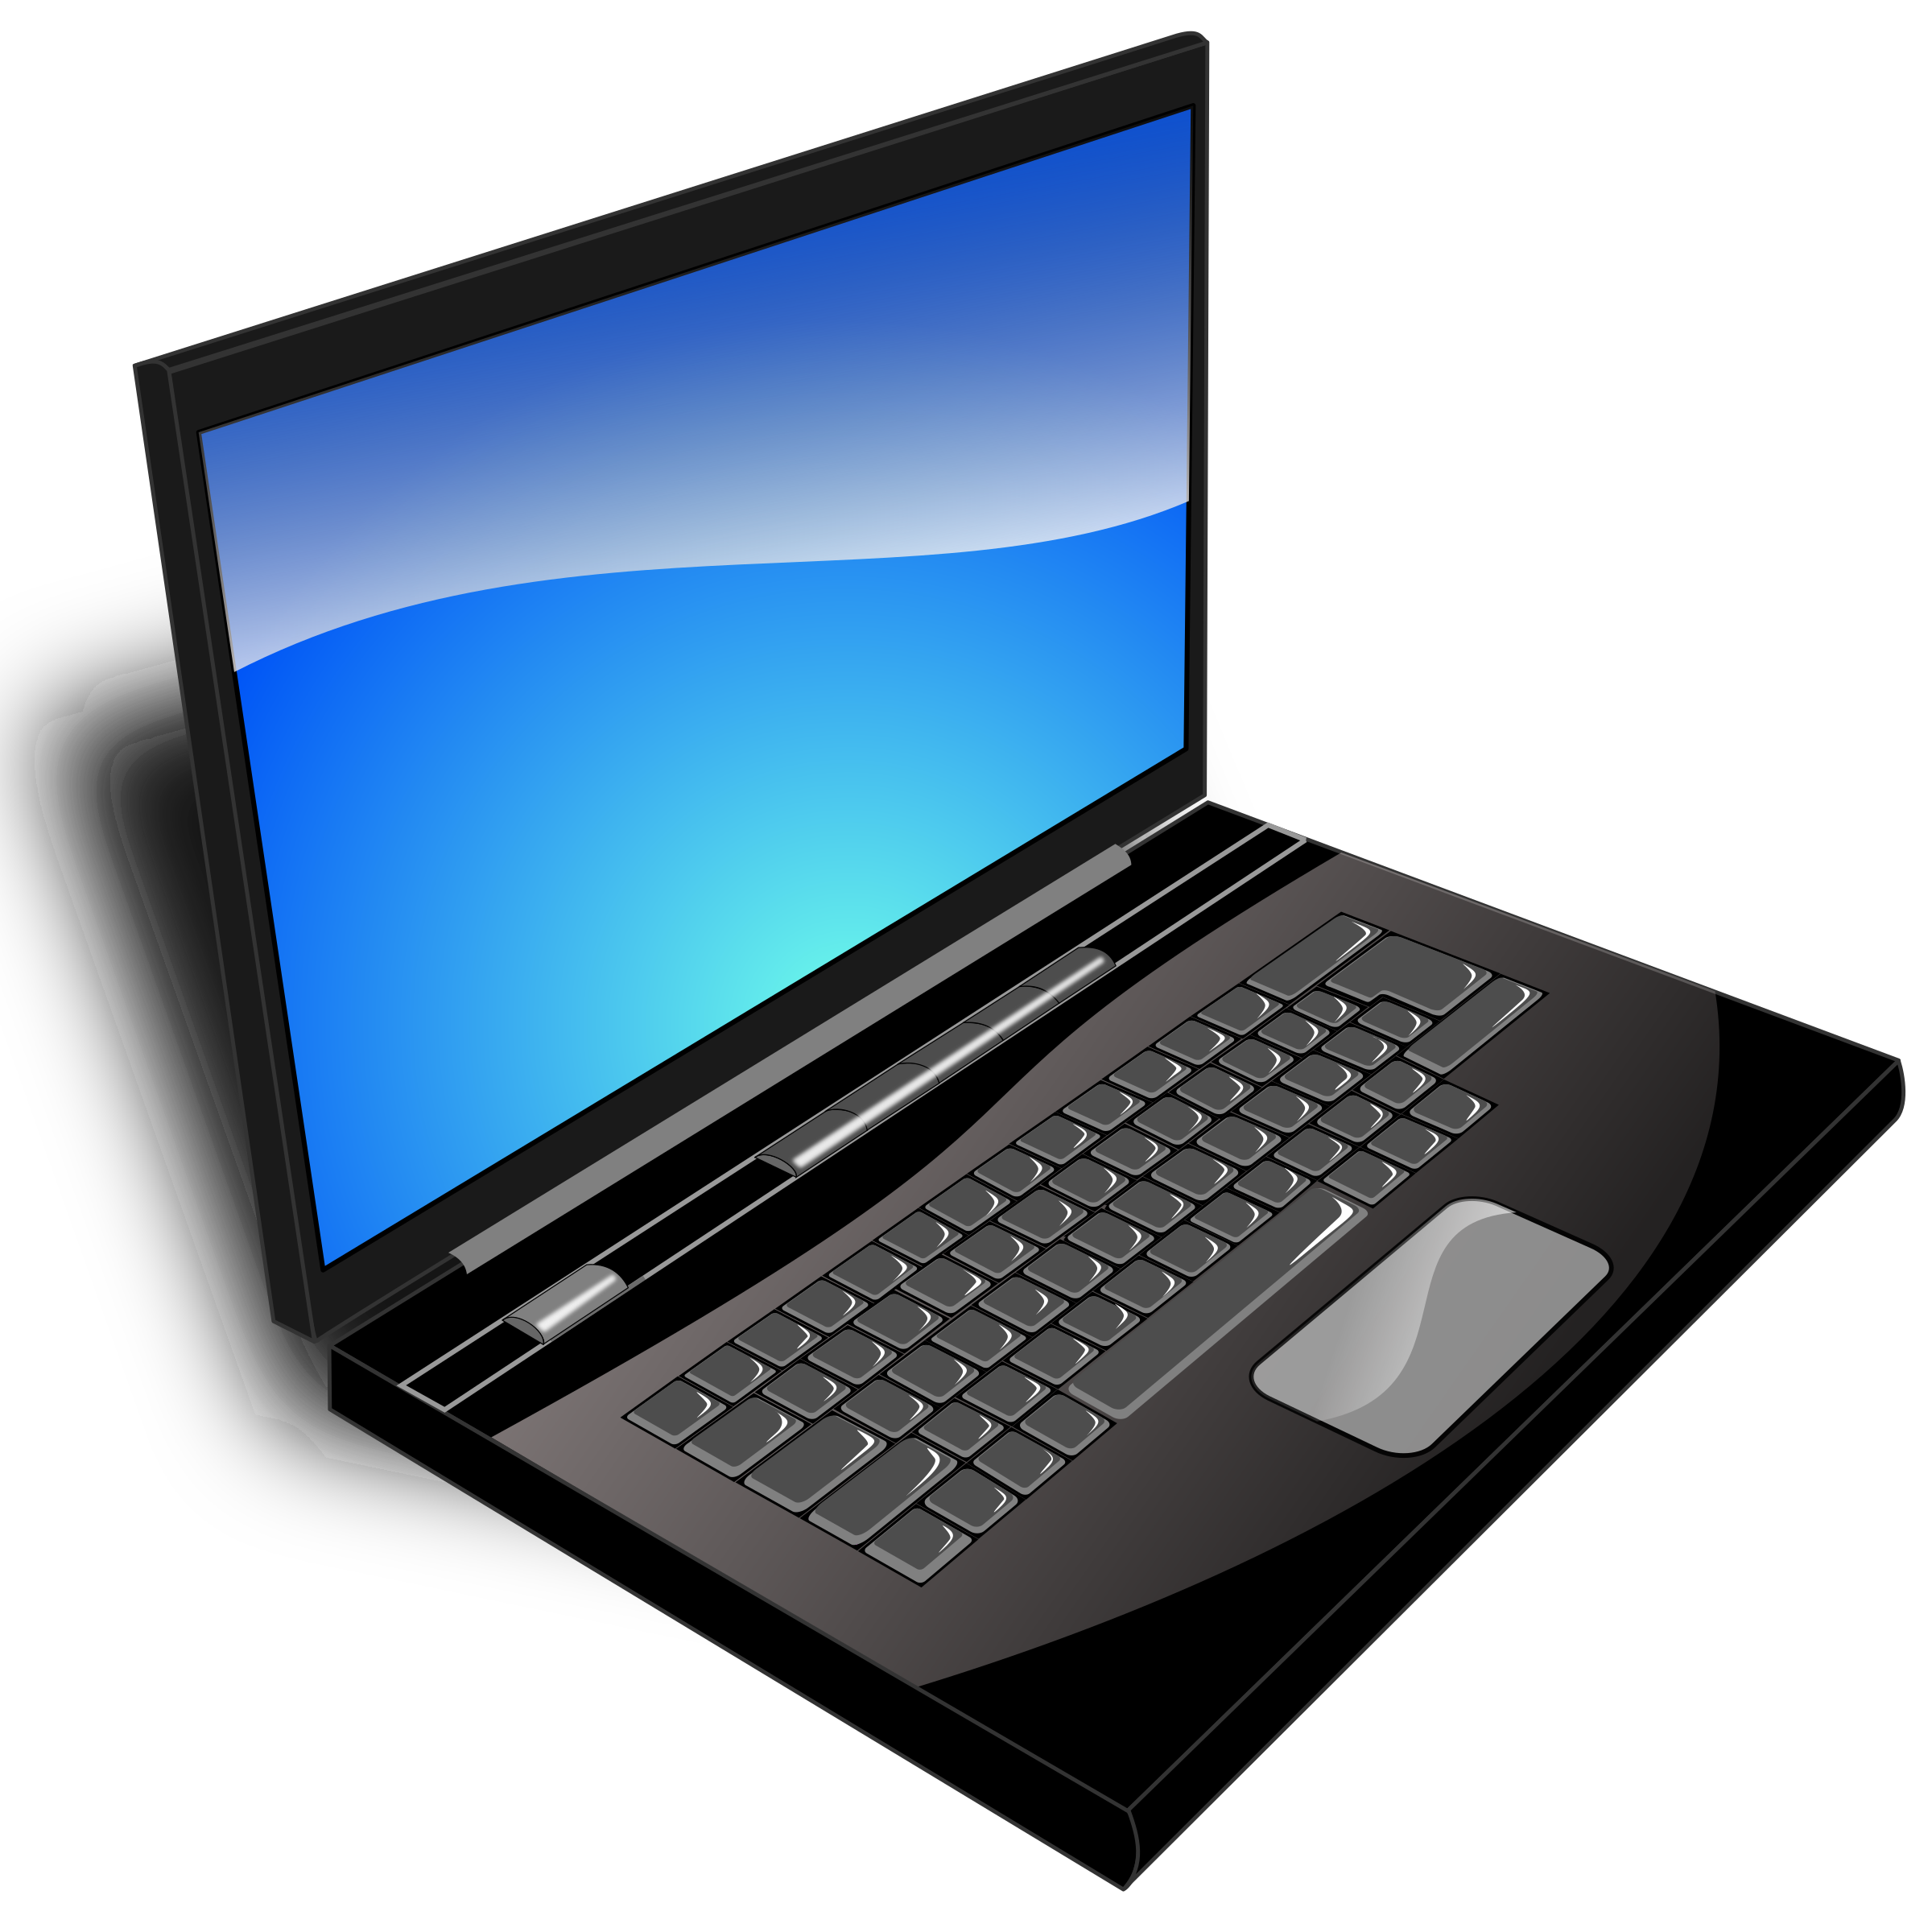 collection of transparent. Electronics clipart laptop